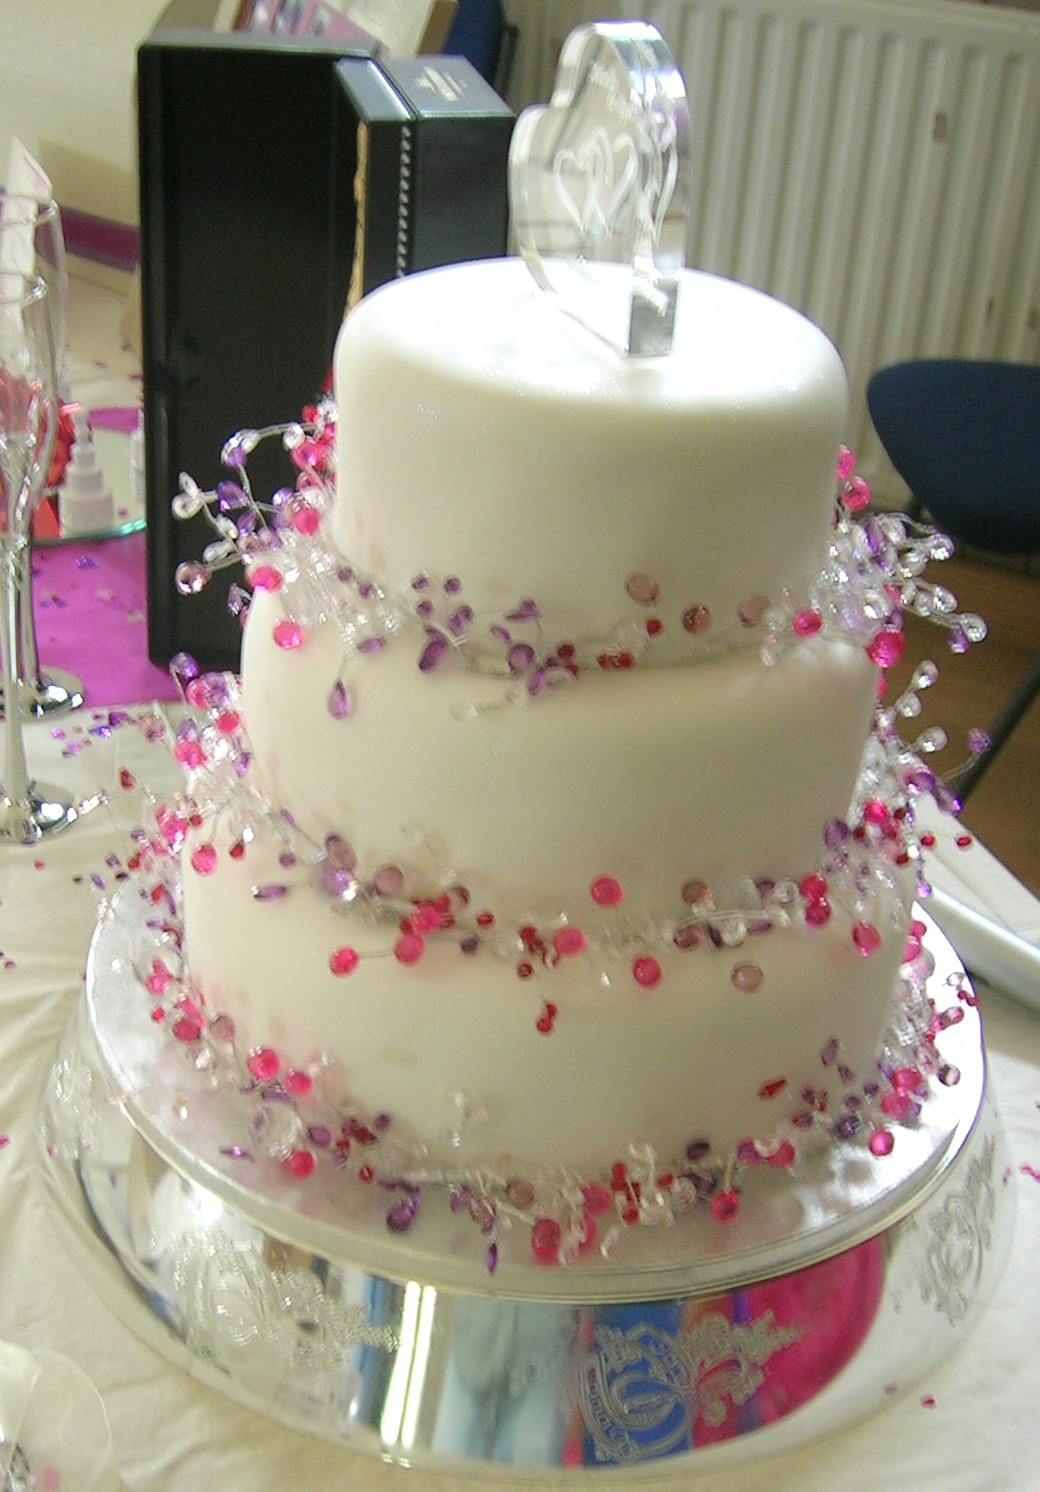 Copy of Wedding-Cake-Decorating-Ideas - Pouted Online Magazine